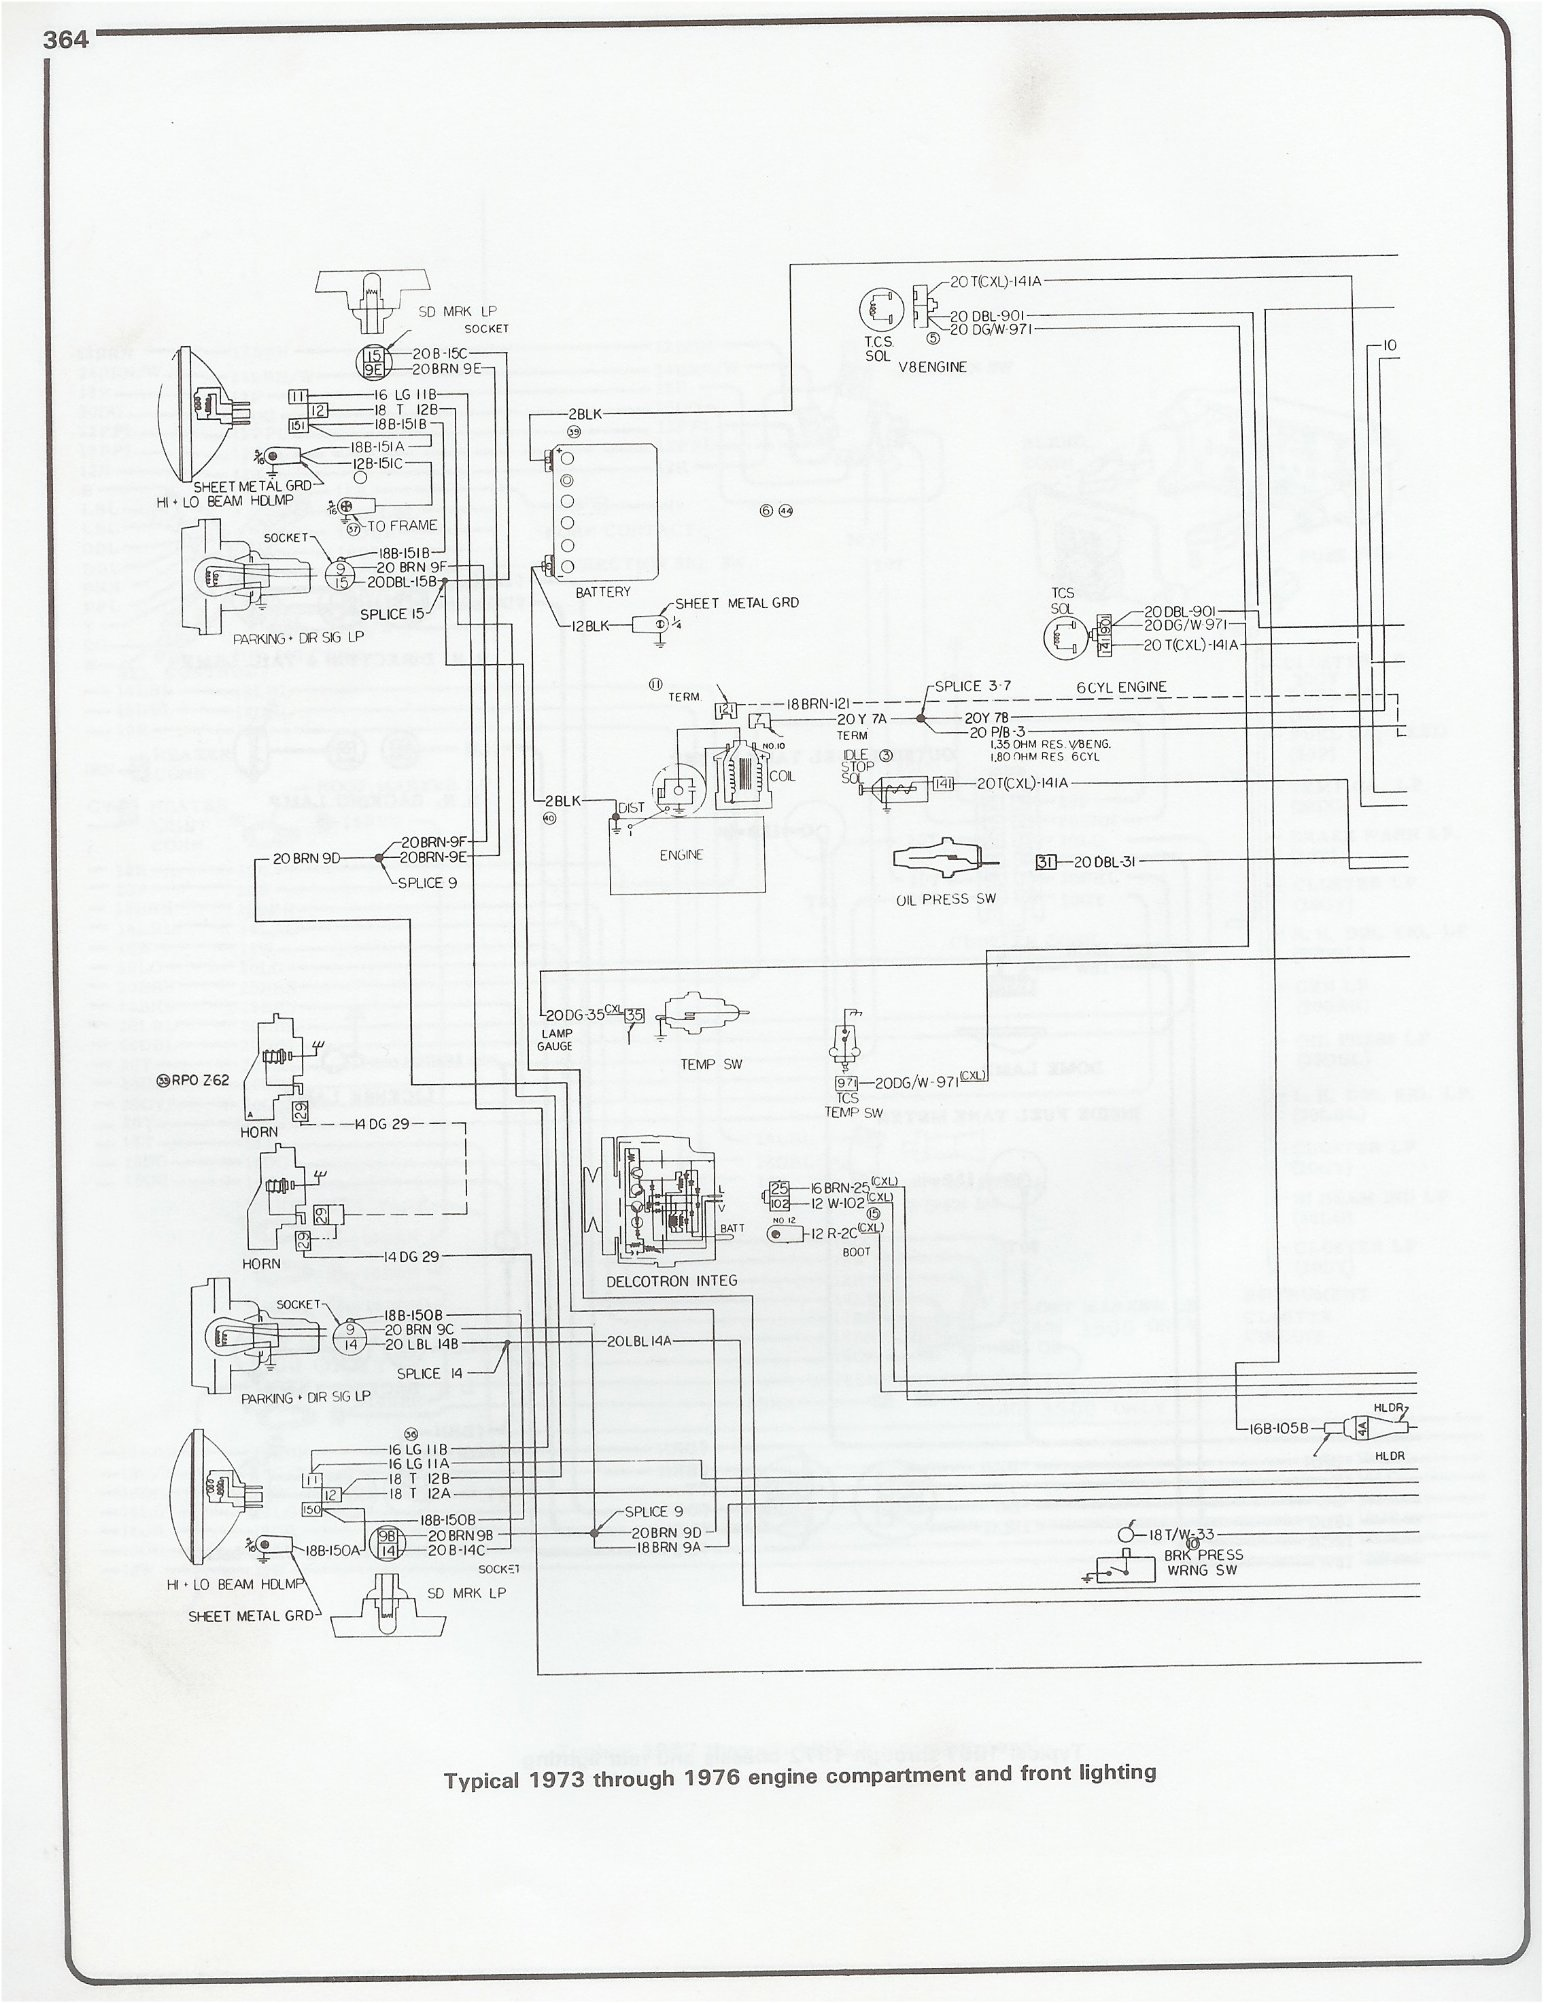 Complete 73 87 Wiring Diagrams Electrical Schematic Drawings Get Free Image About Diagram 76 Engine And Front Lighting